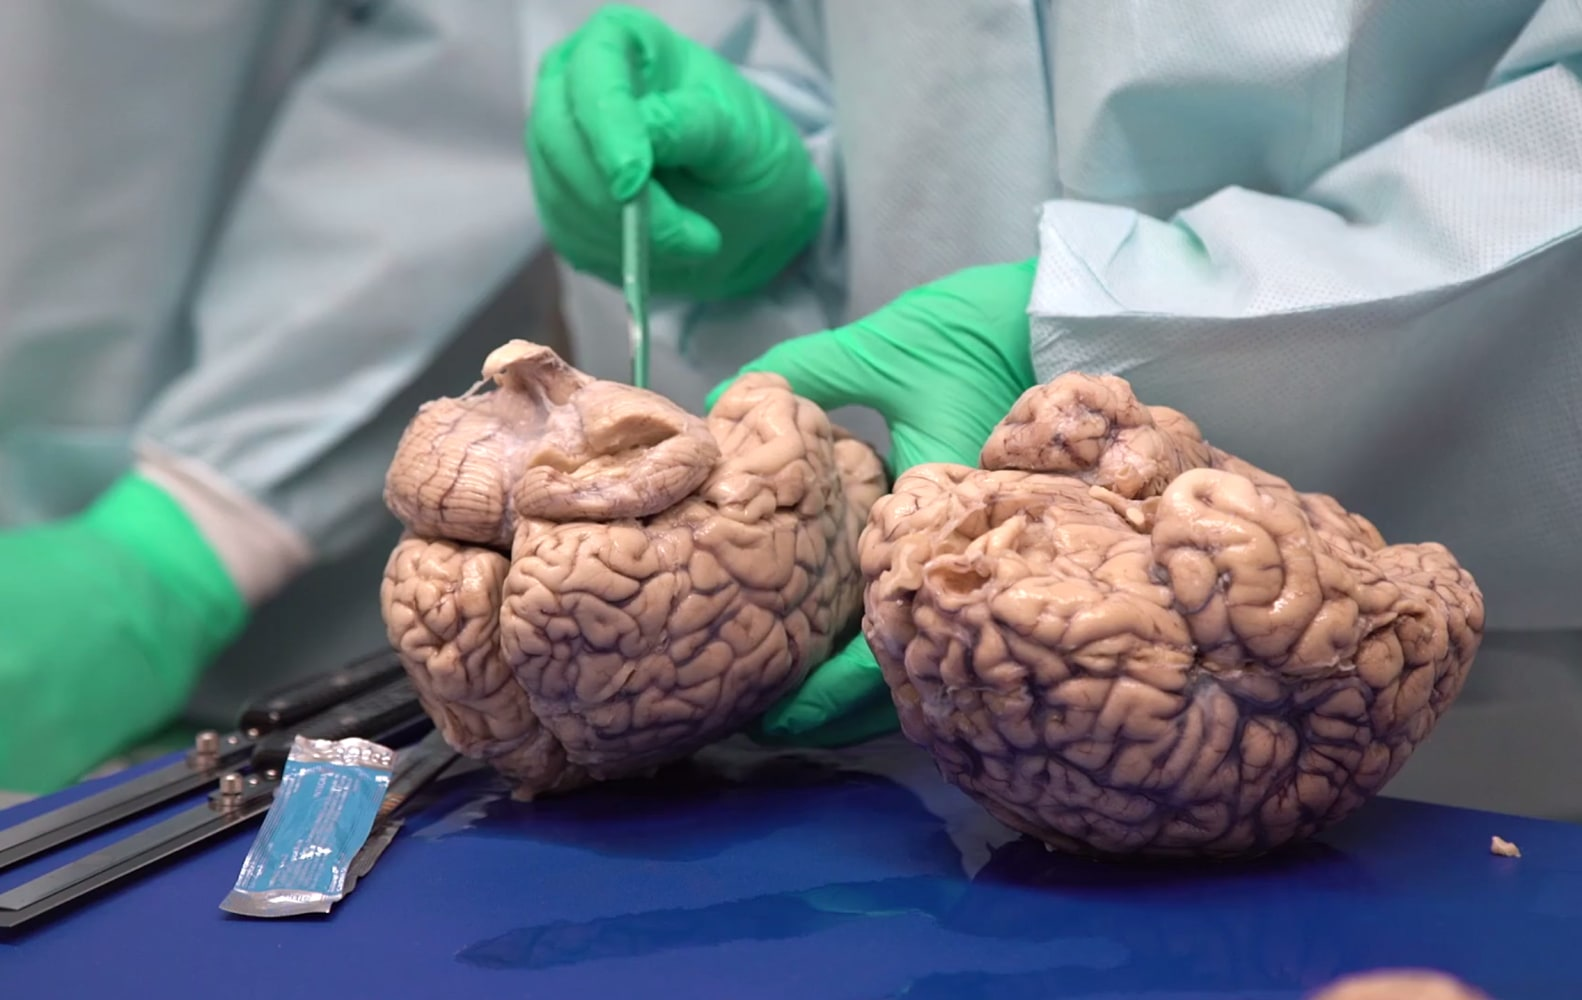 Study: Hits, Not Concussions, Cause CTE - Boston University